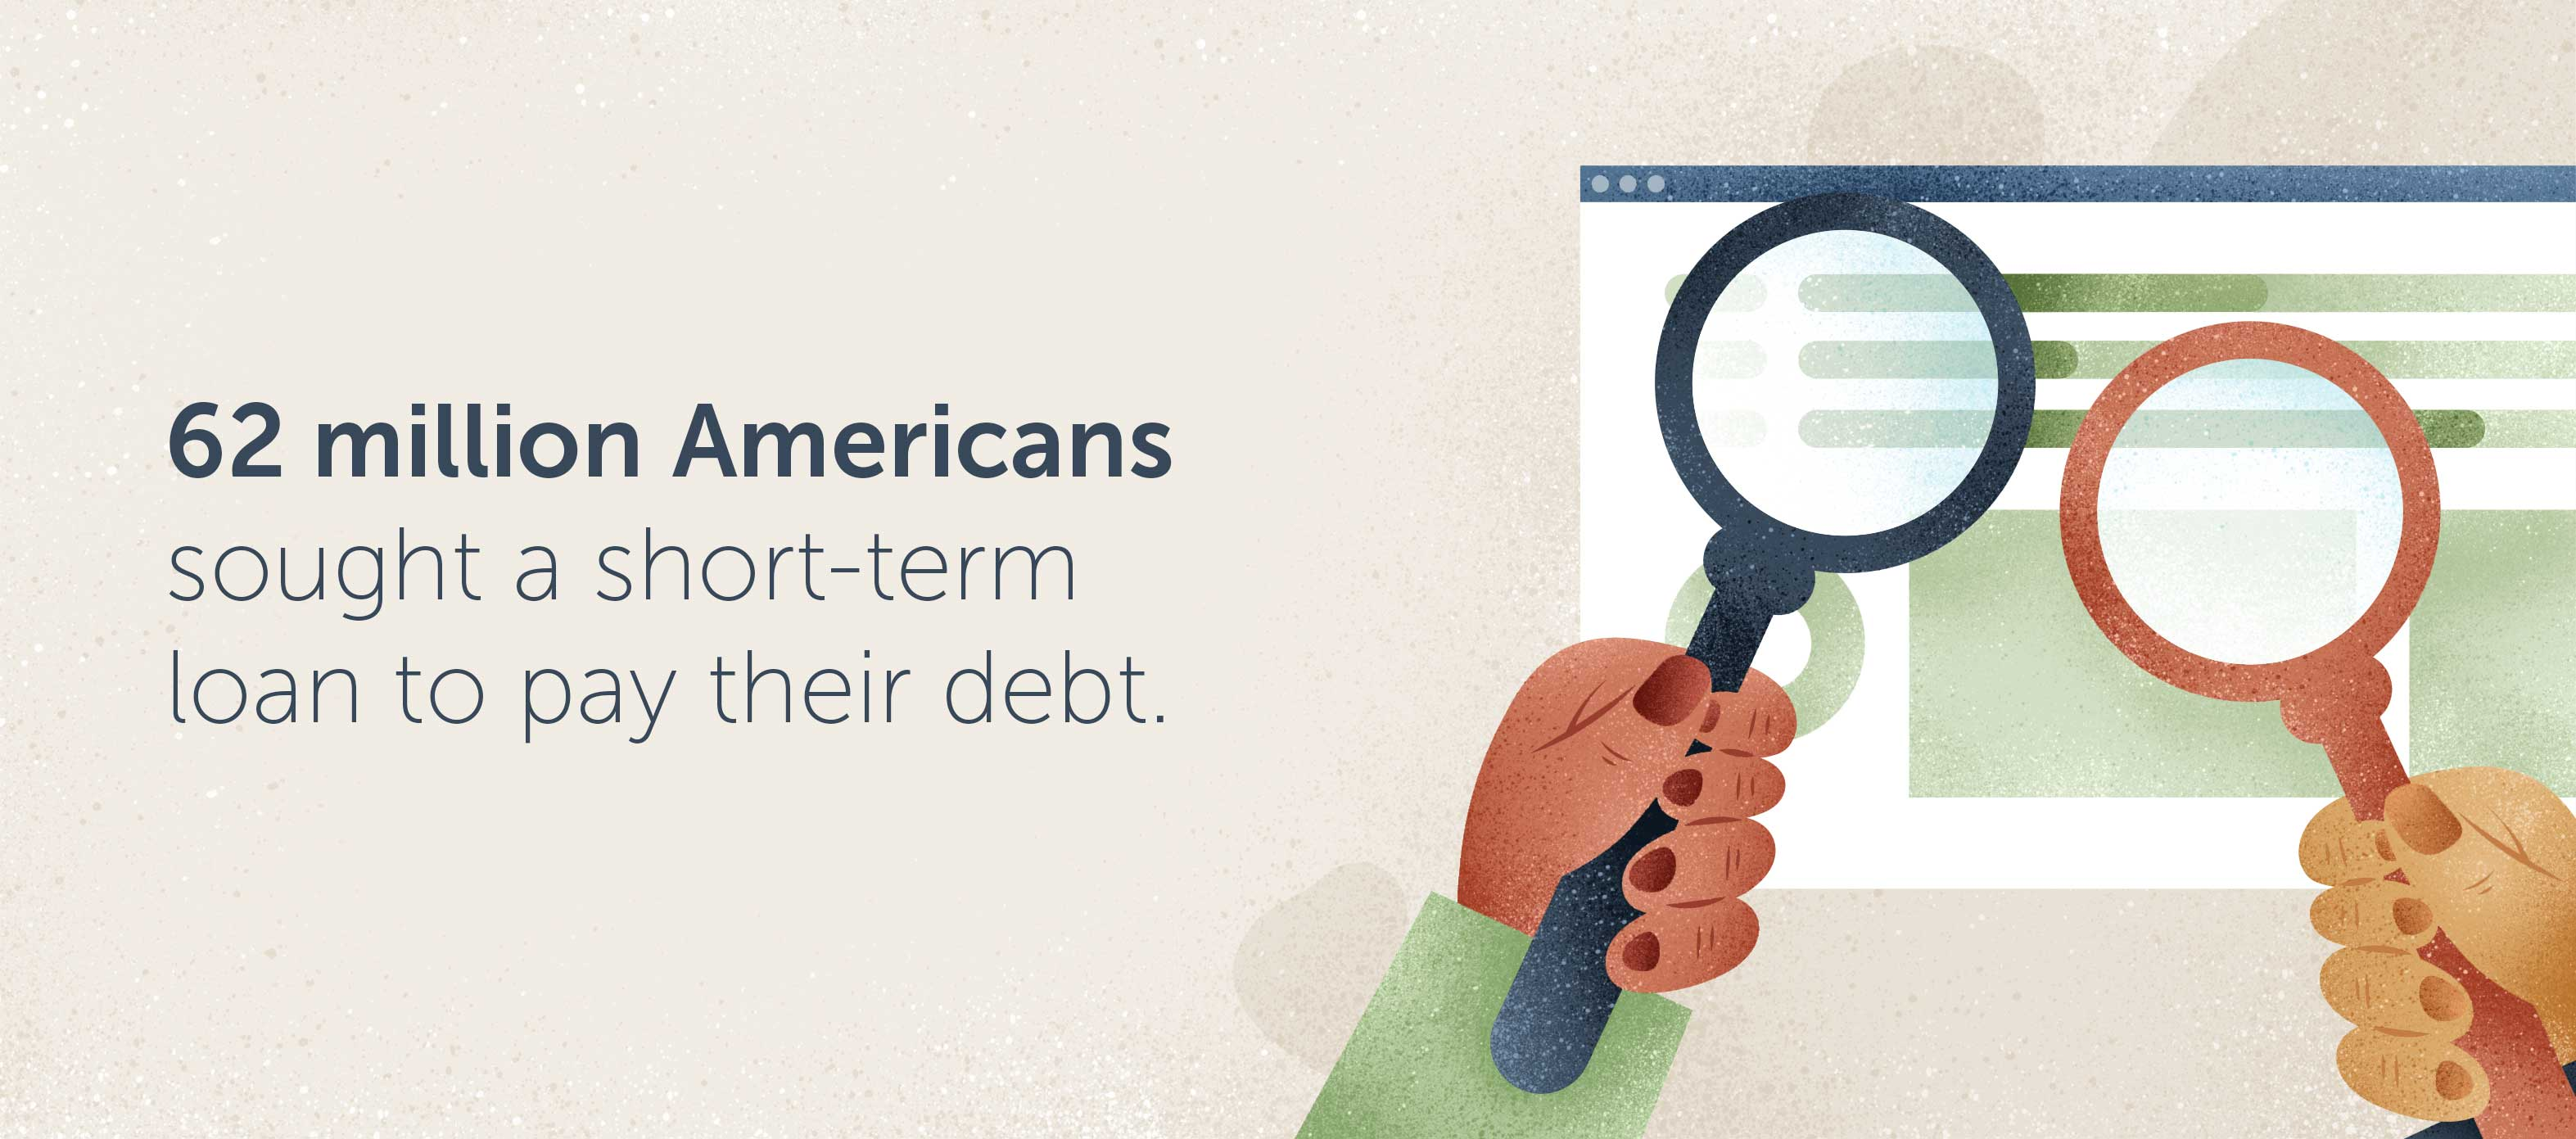 62 million Americans sought a short-term loan to pay their debt.